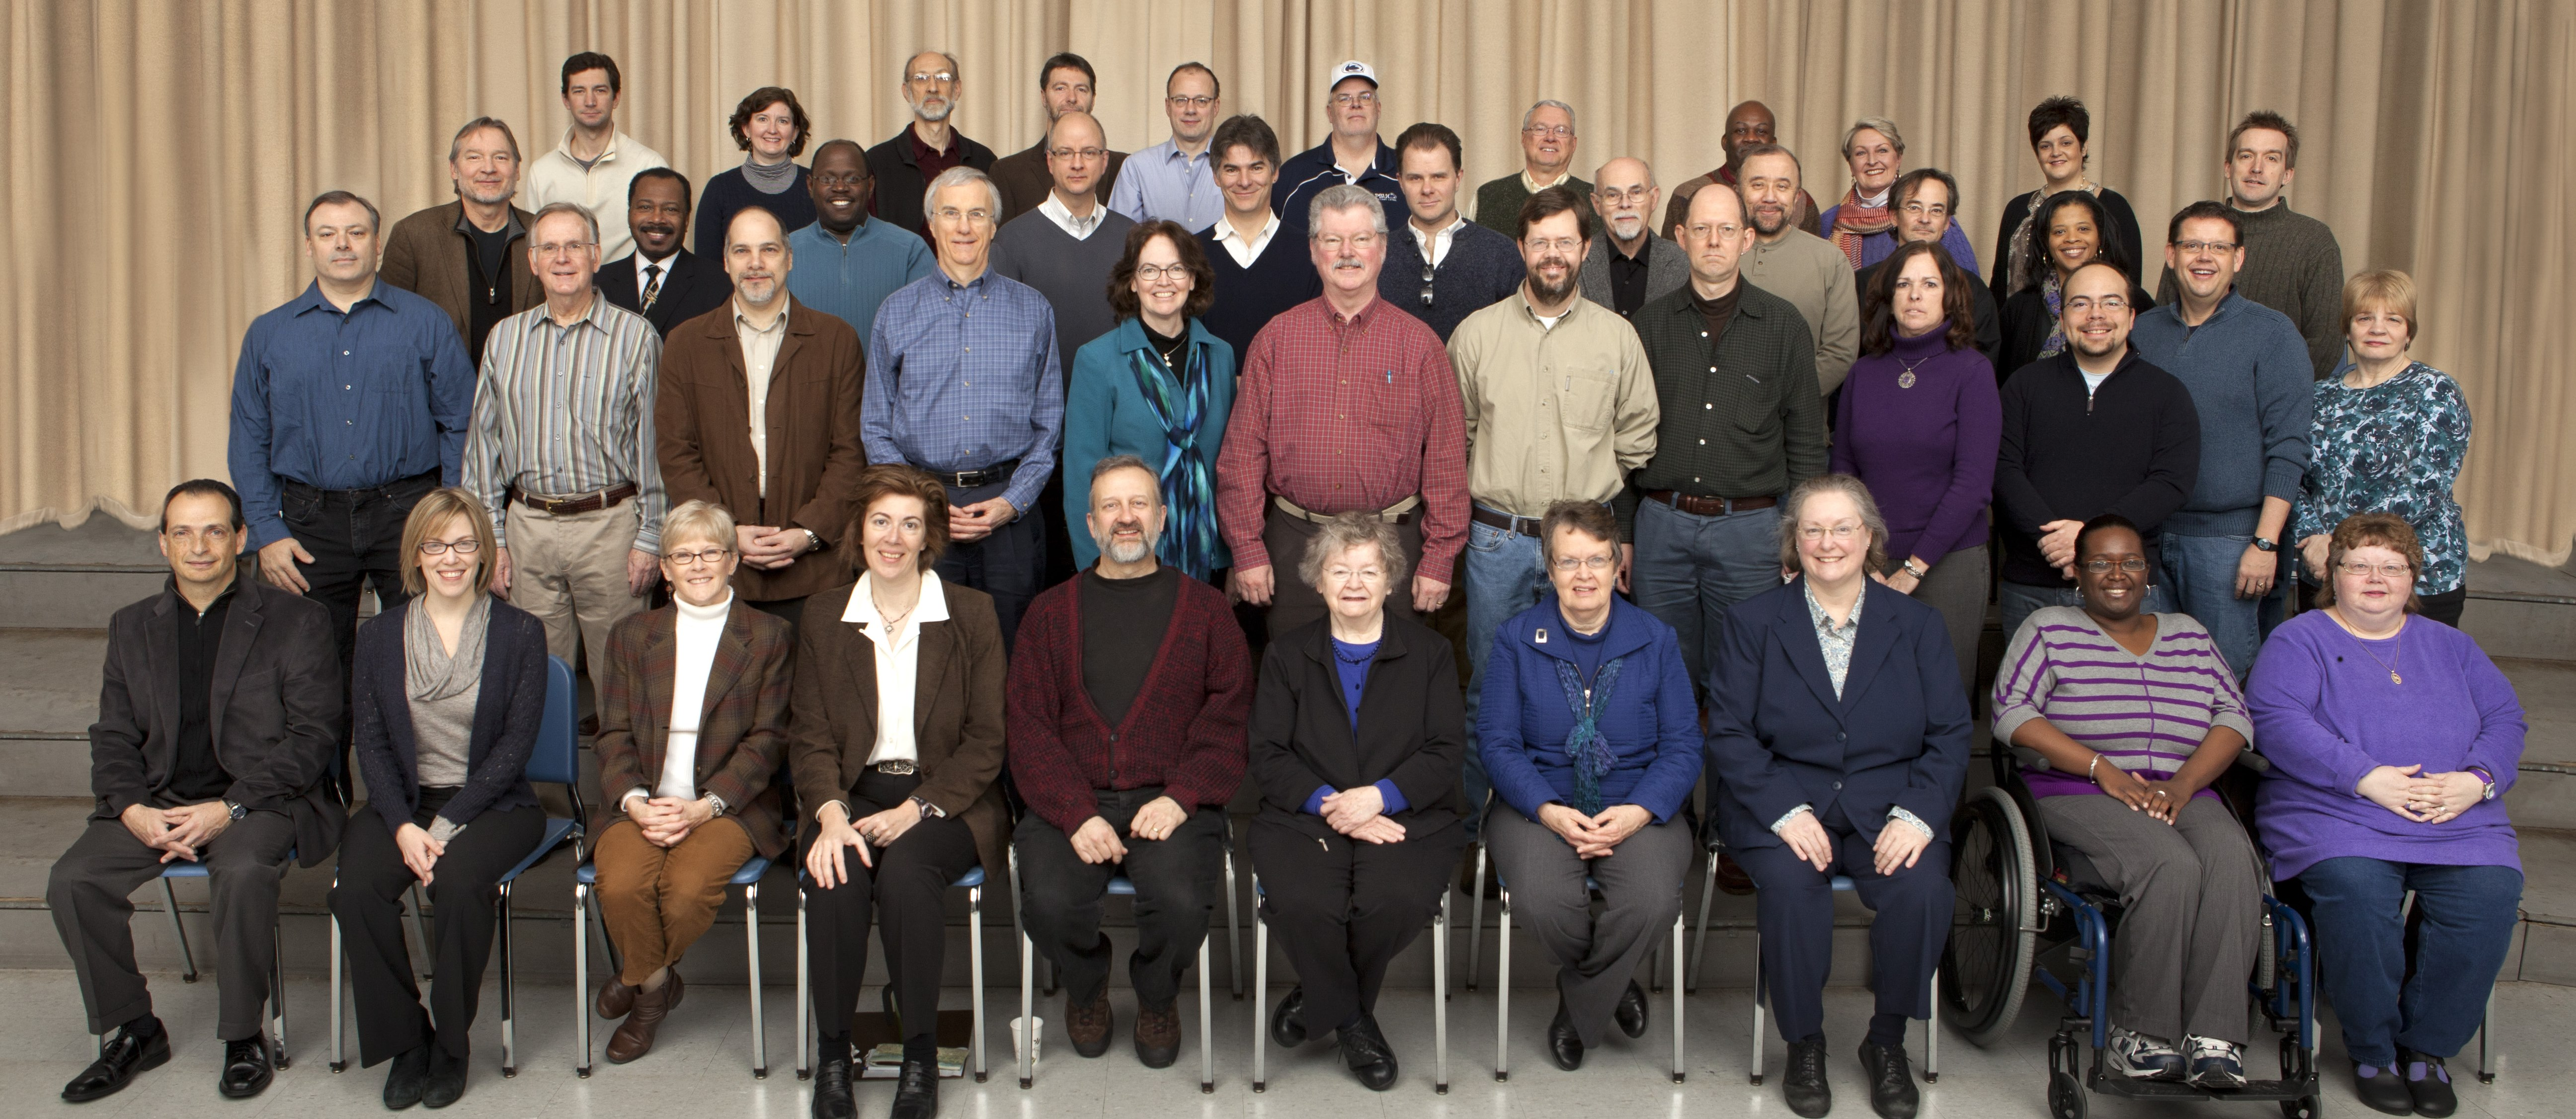 2013 School of Music faculty